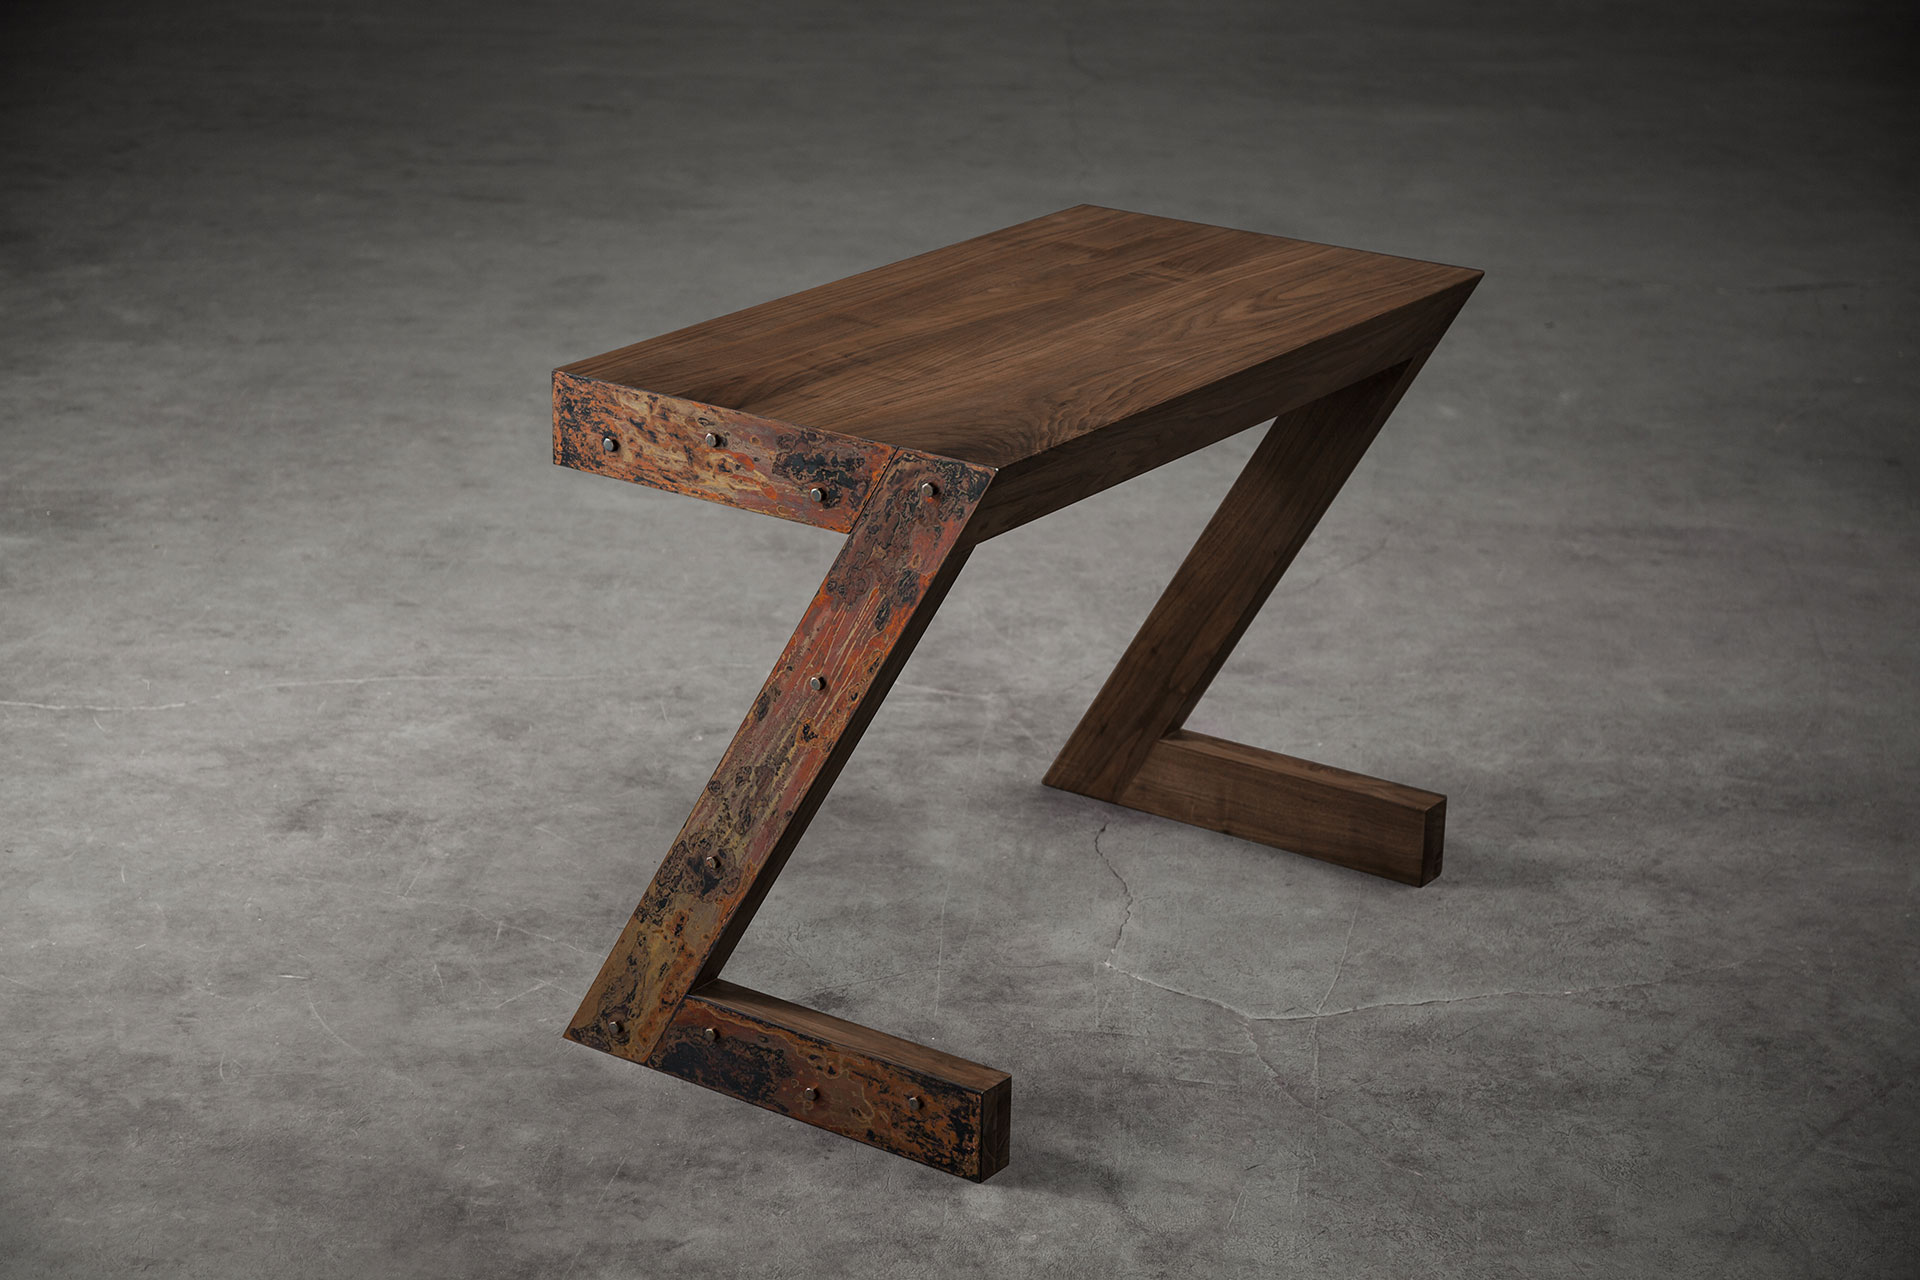 Conceptual design console table in solid American walnut wood